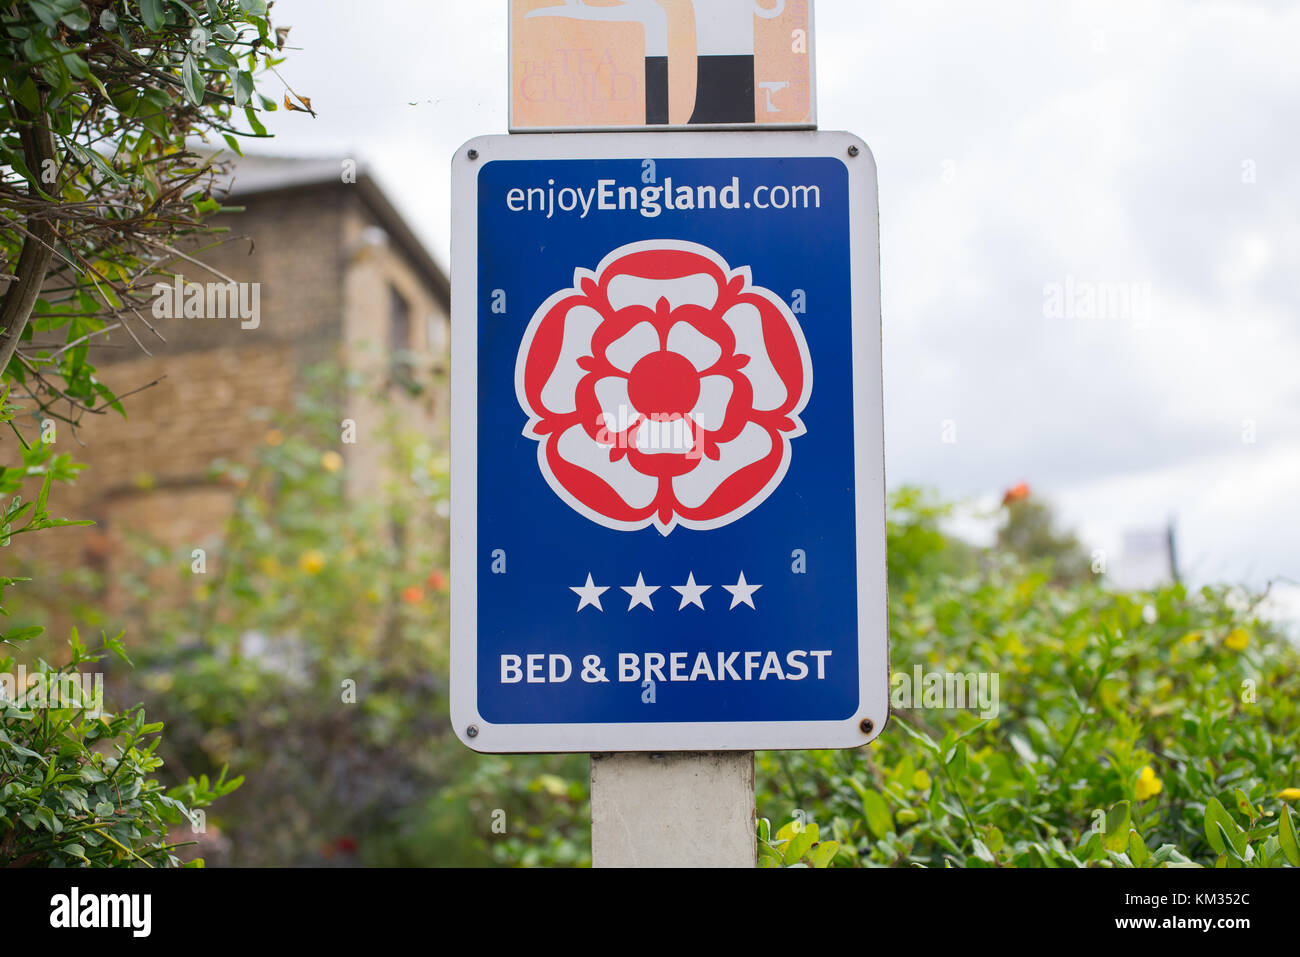 Bed and Breakfast sign stating its belonging to enjoy England.com,  England's star-rated guest accommodation - Stock Image